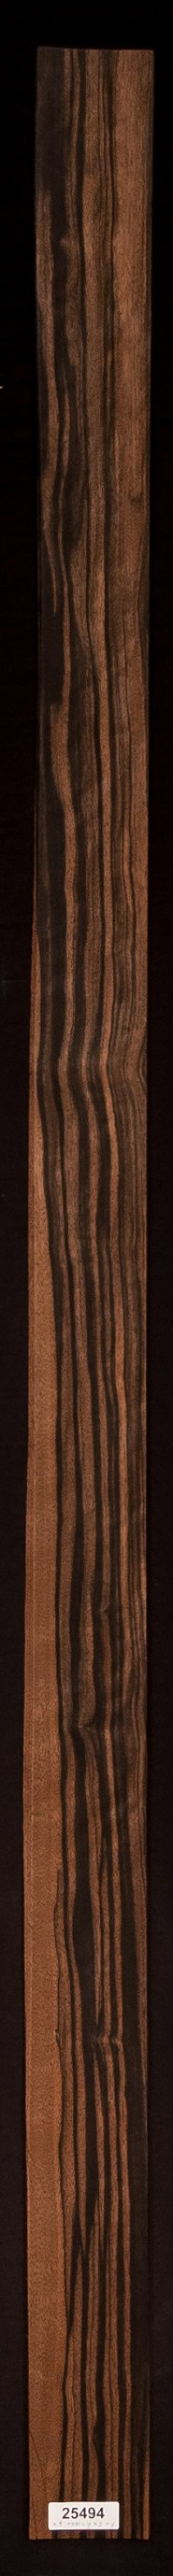 Quartersawn Ebony (Macassar) Veneer Lot